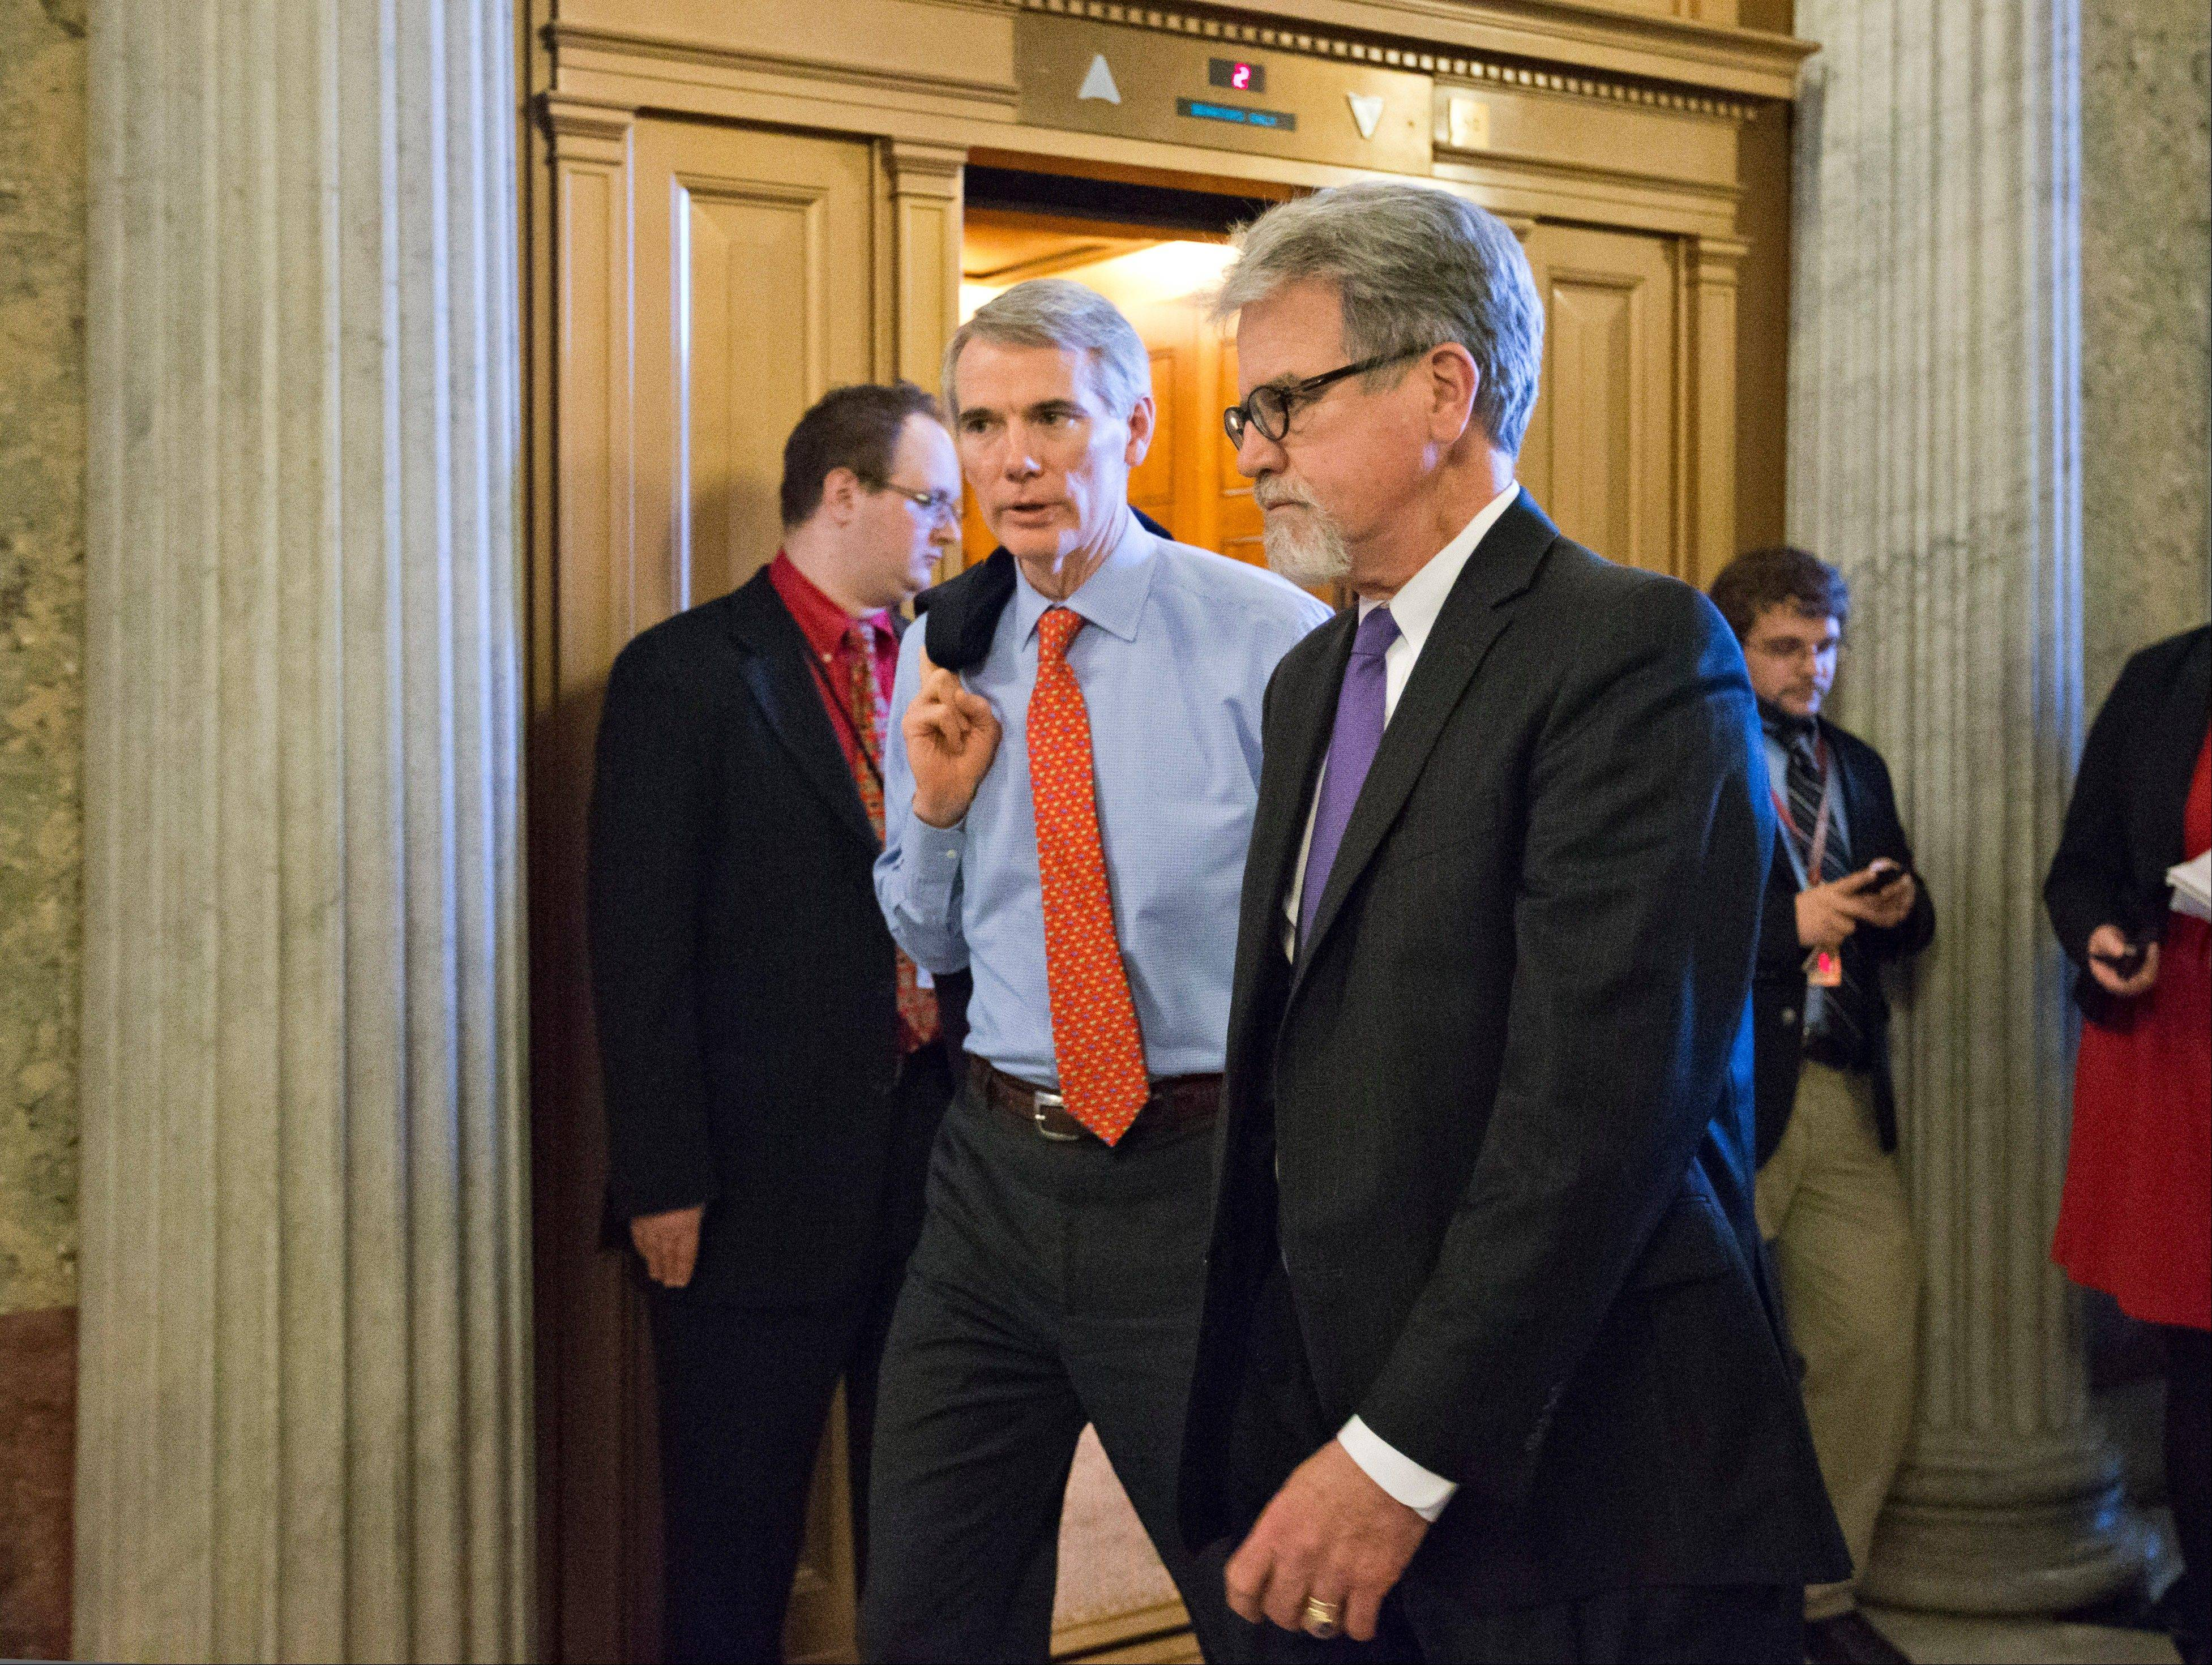 Sen. Tom Coburn, right, is seen with Sen. Rob Portman in the Capitol last month. Coburn, an Oklahoma Republican, commended president Barack Obama�s recent effort to deal more personally with congressional Republicans.